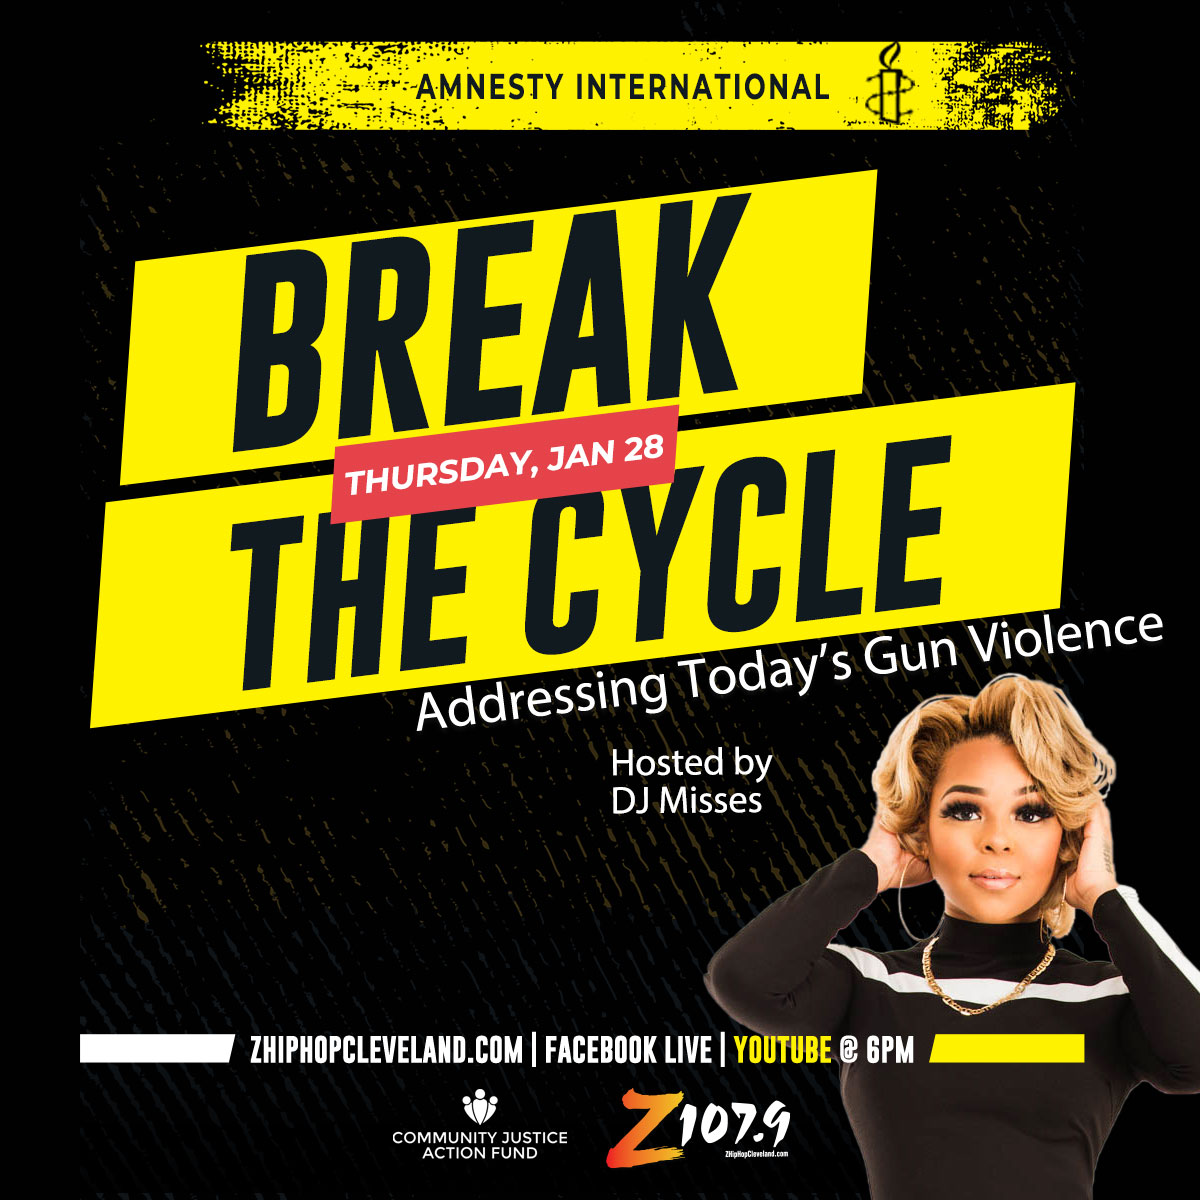 Break The Cycle: Addressing Today's Gun Violence